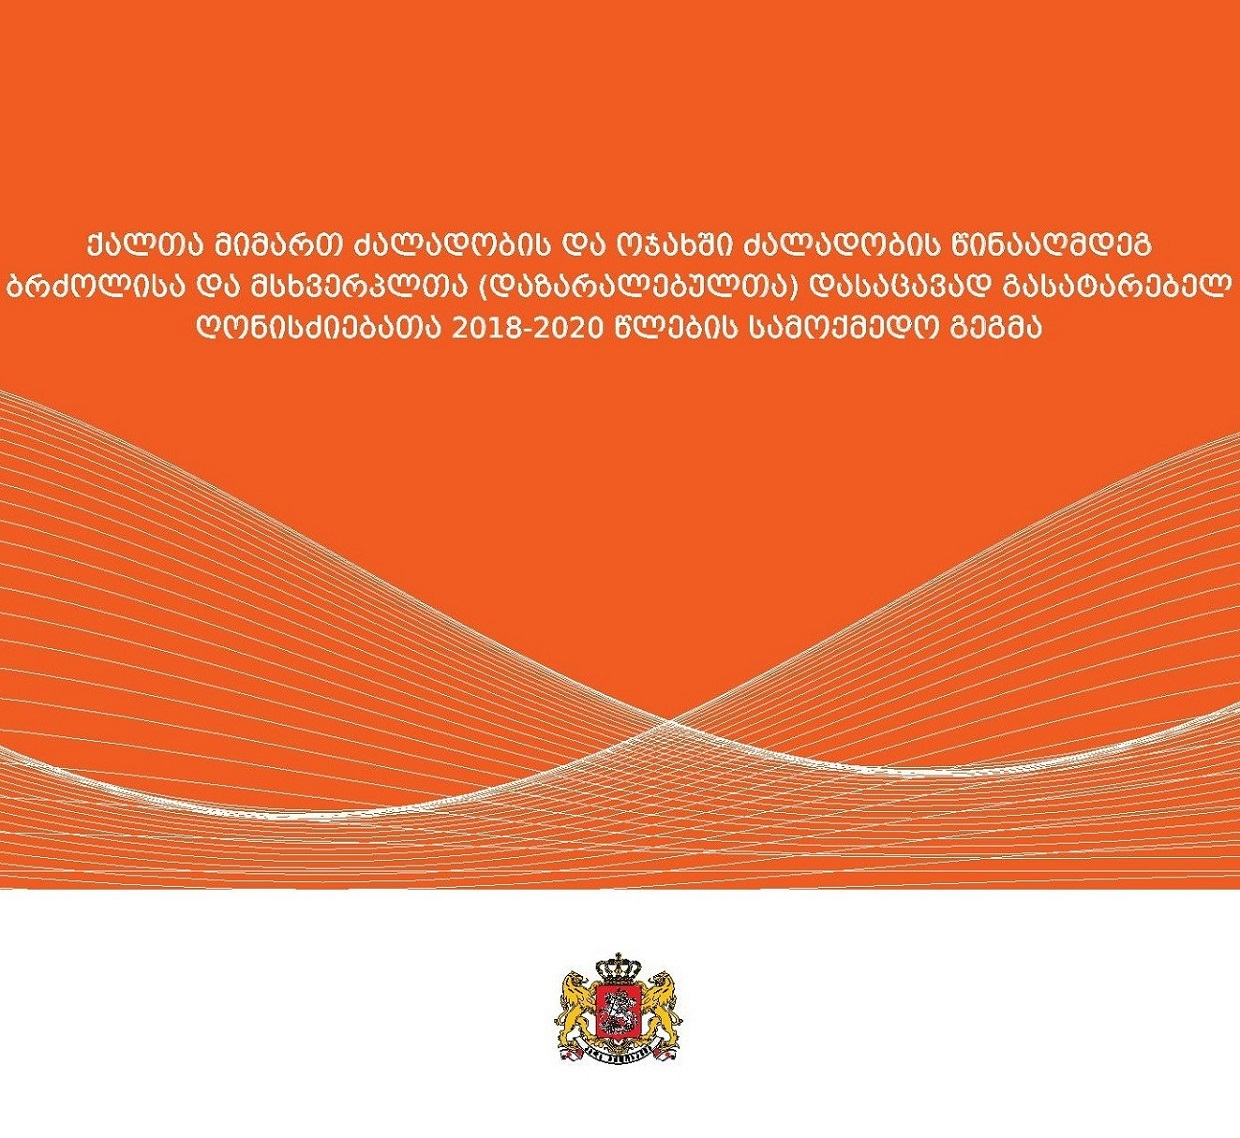 The 2018-2020 National Action Plan on Combating Violence against Women and Domestic Violence and Measures to be Implemented for the Protection of Victims (Survivors)